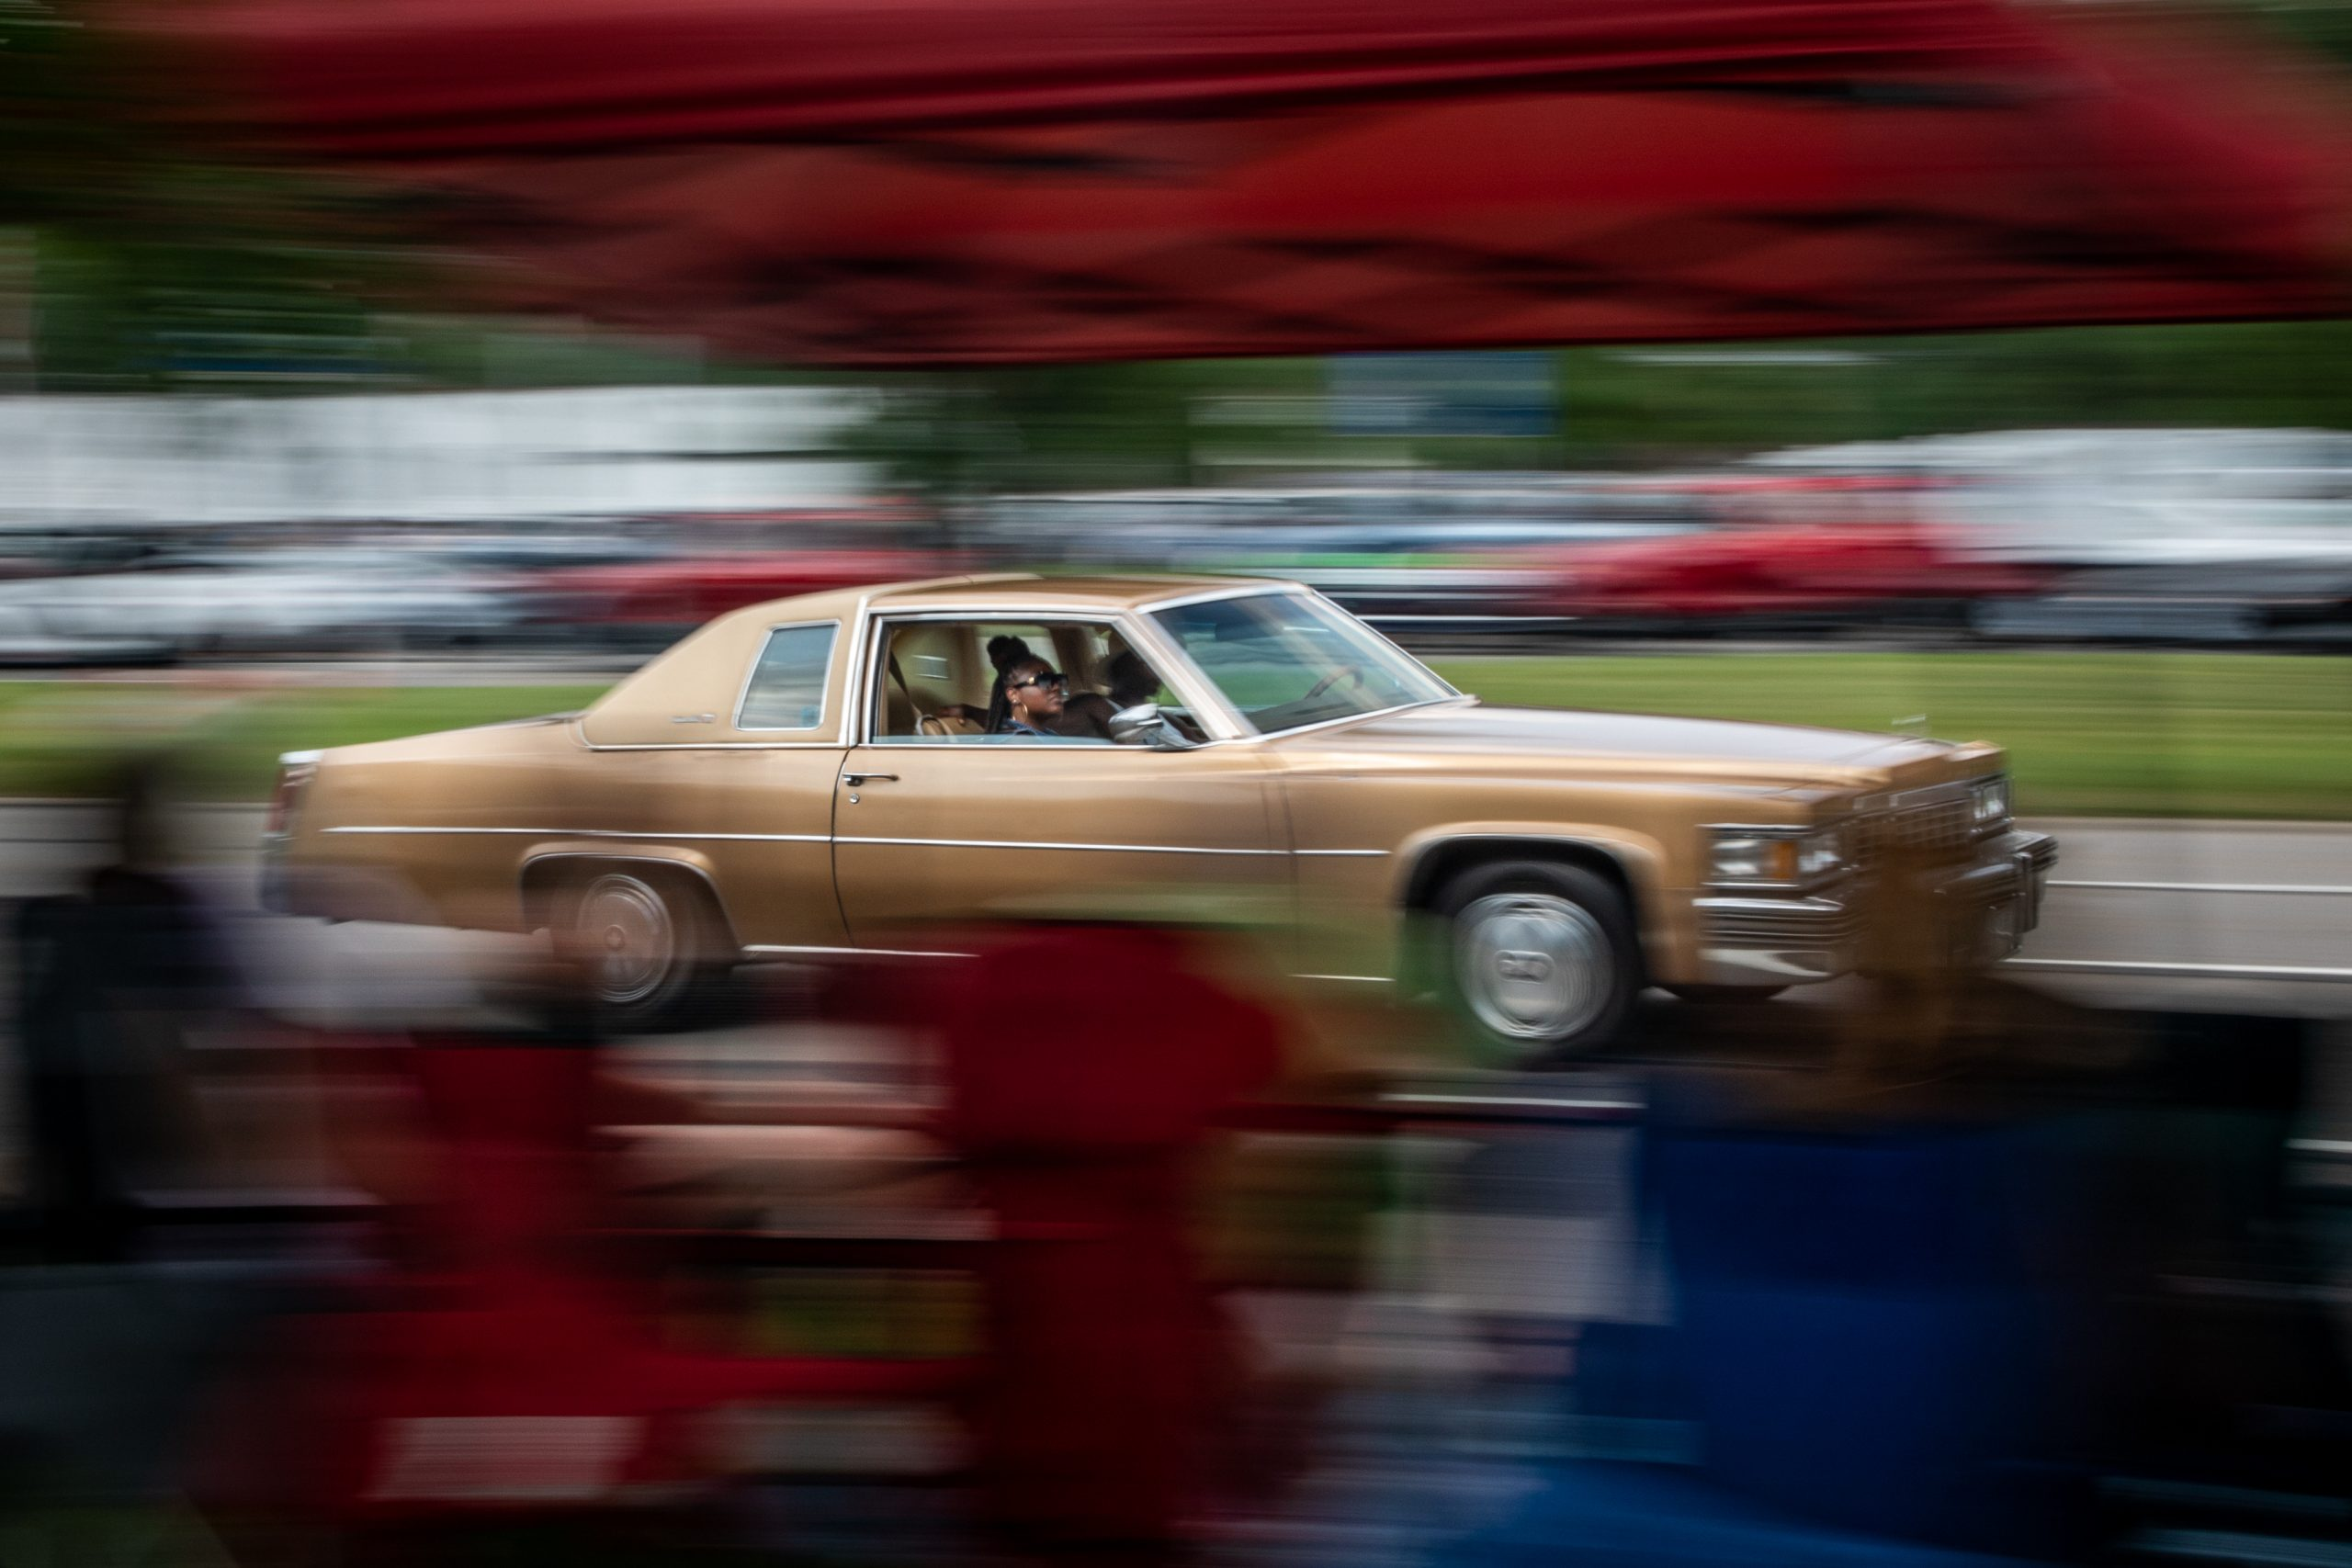 2021 Dream Cruise woodward ave action brougham